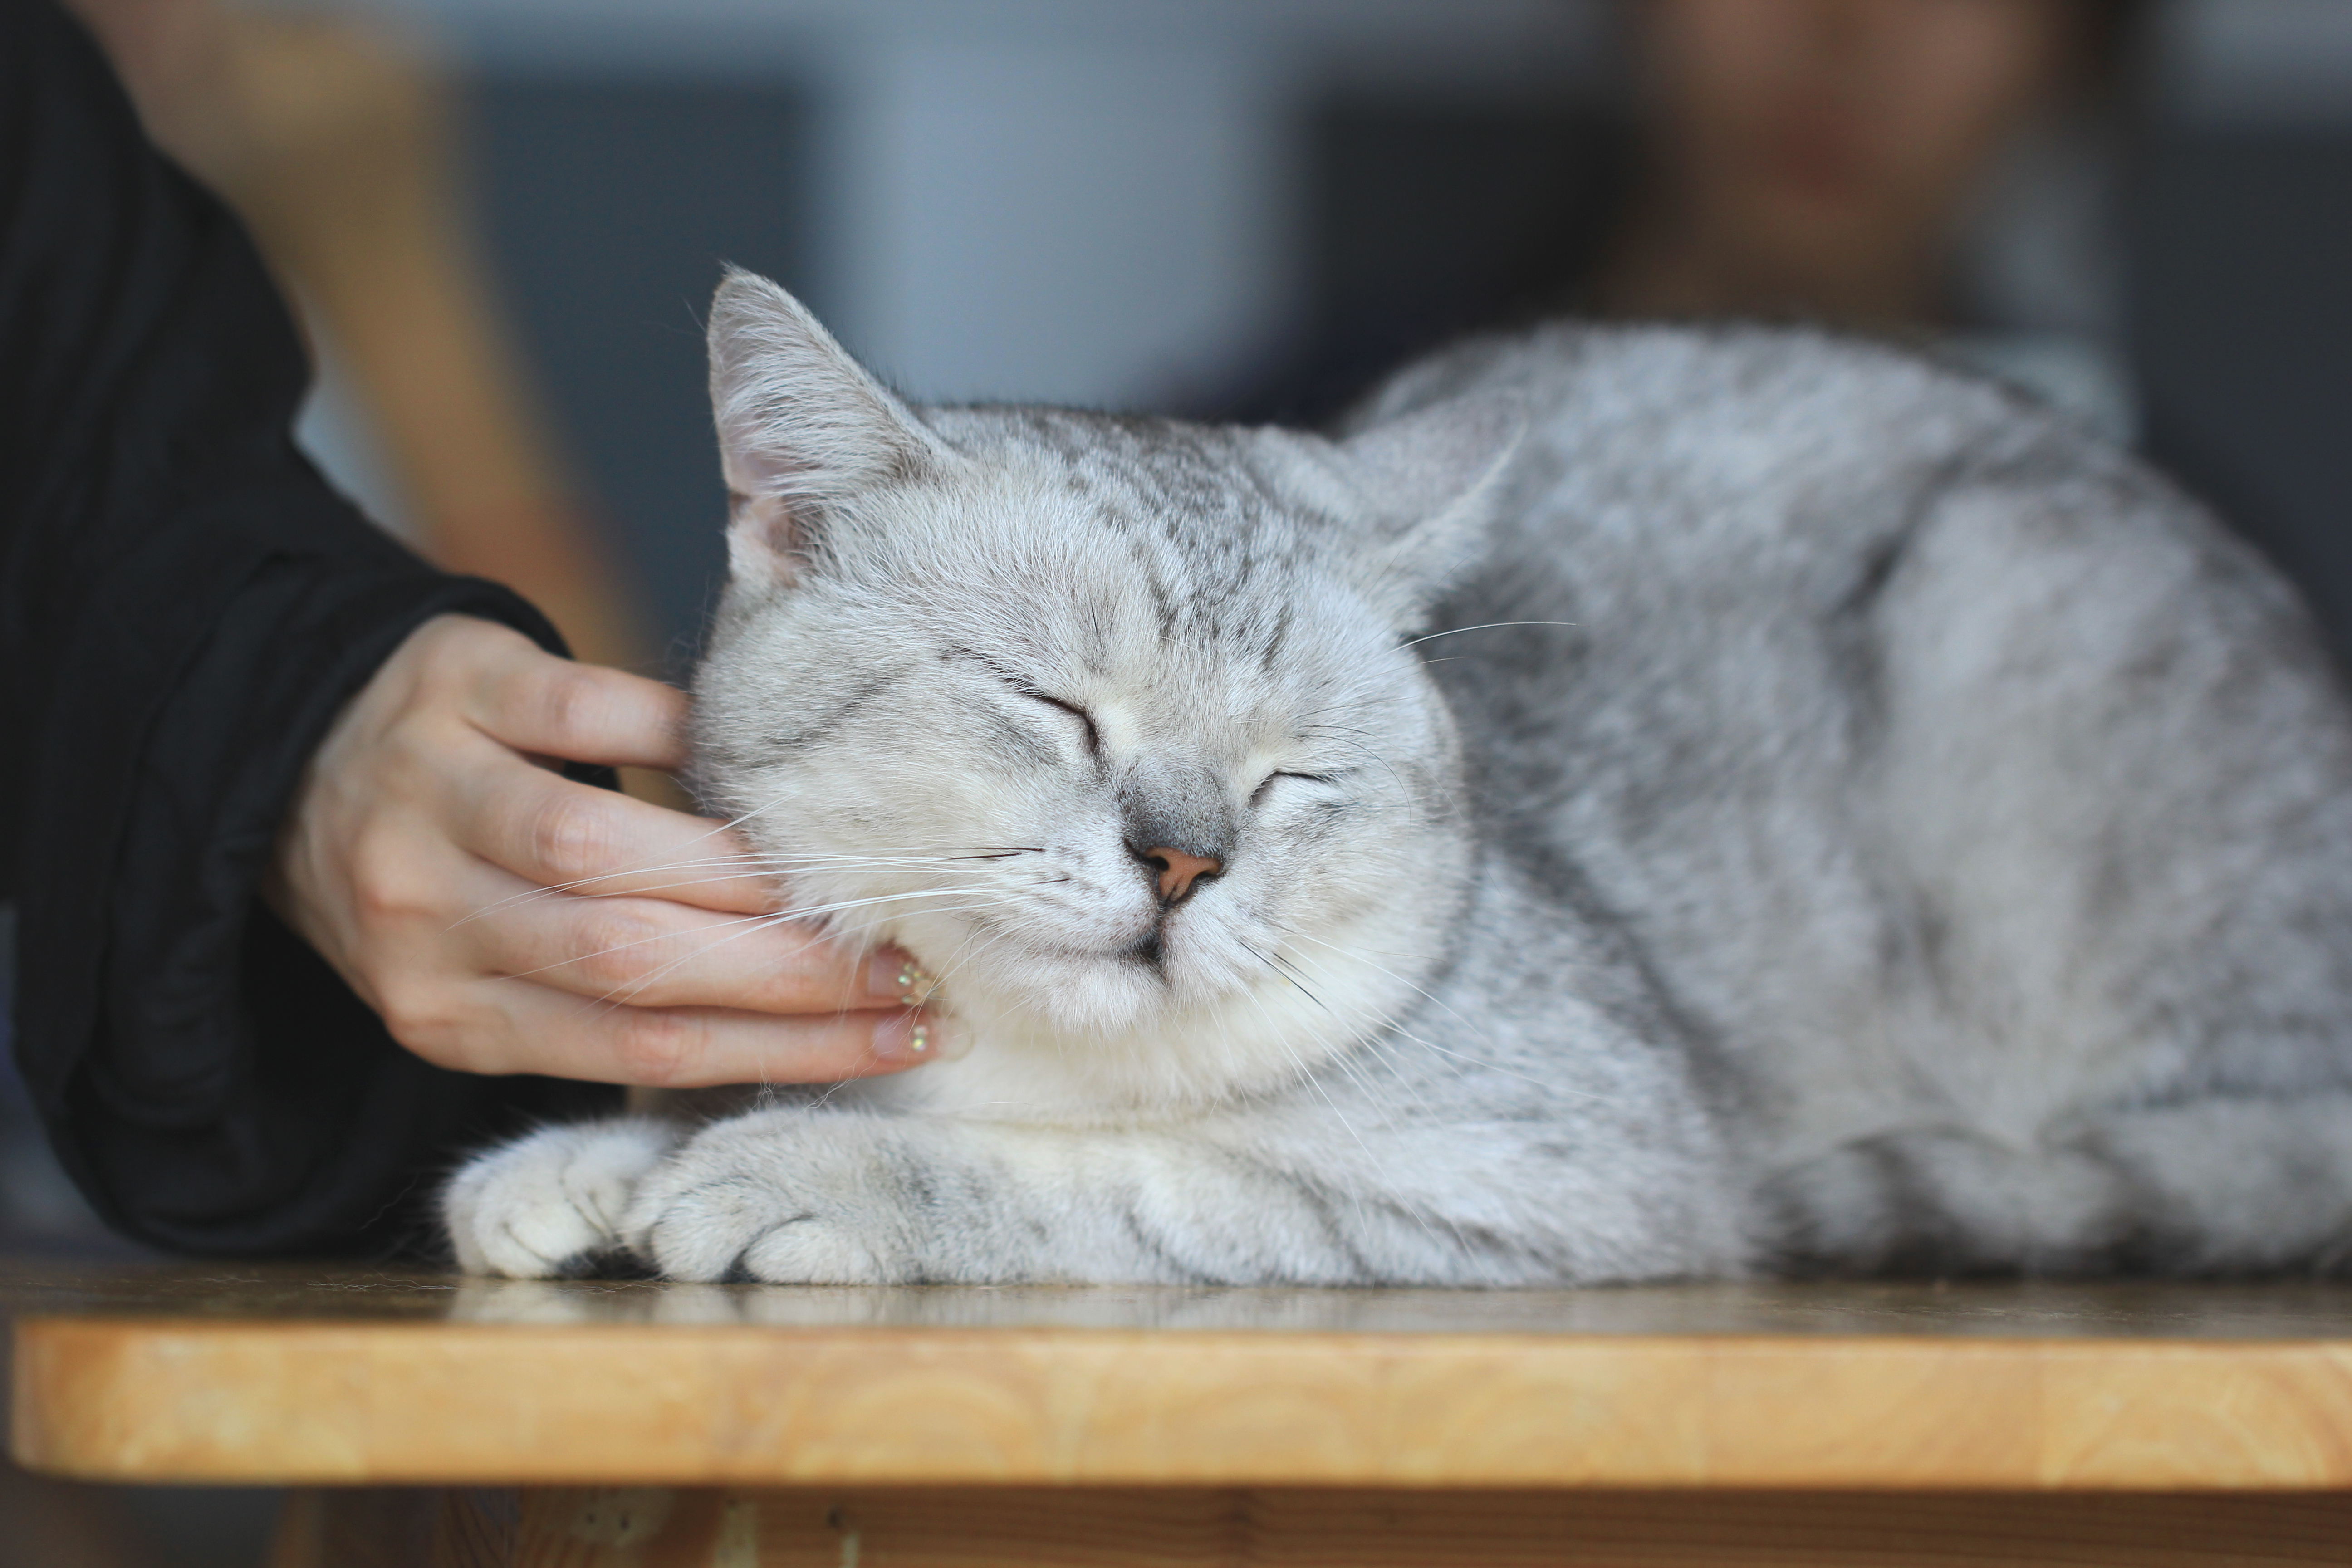 WHY CATS PURR?